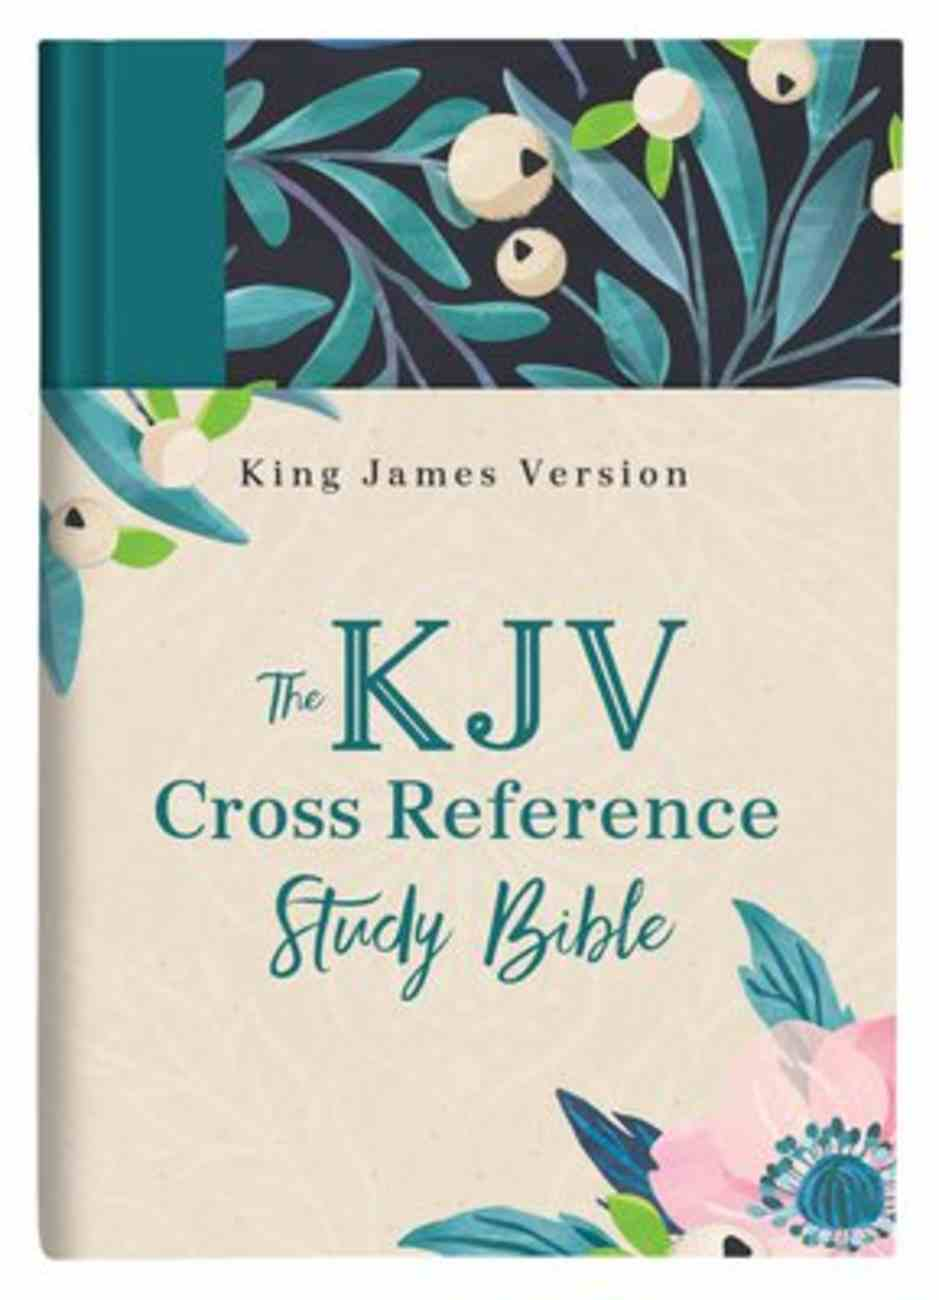 KJV Cross Reference Study Bible Women's Edition Turquoise Floral (Red Letter Edition) Hardback